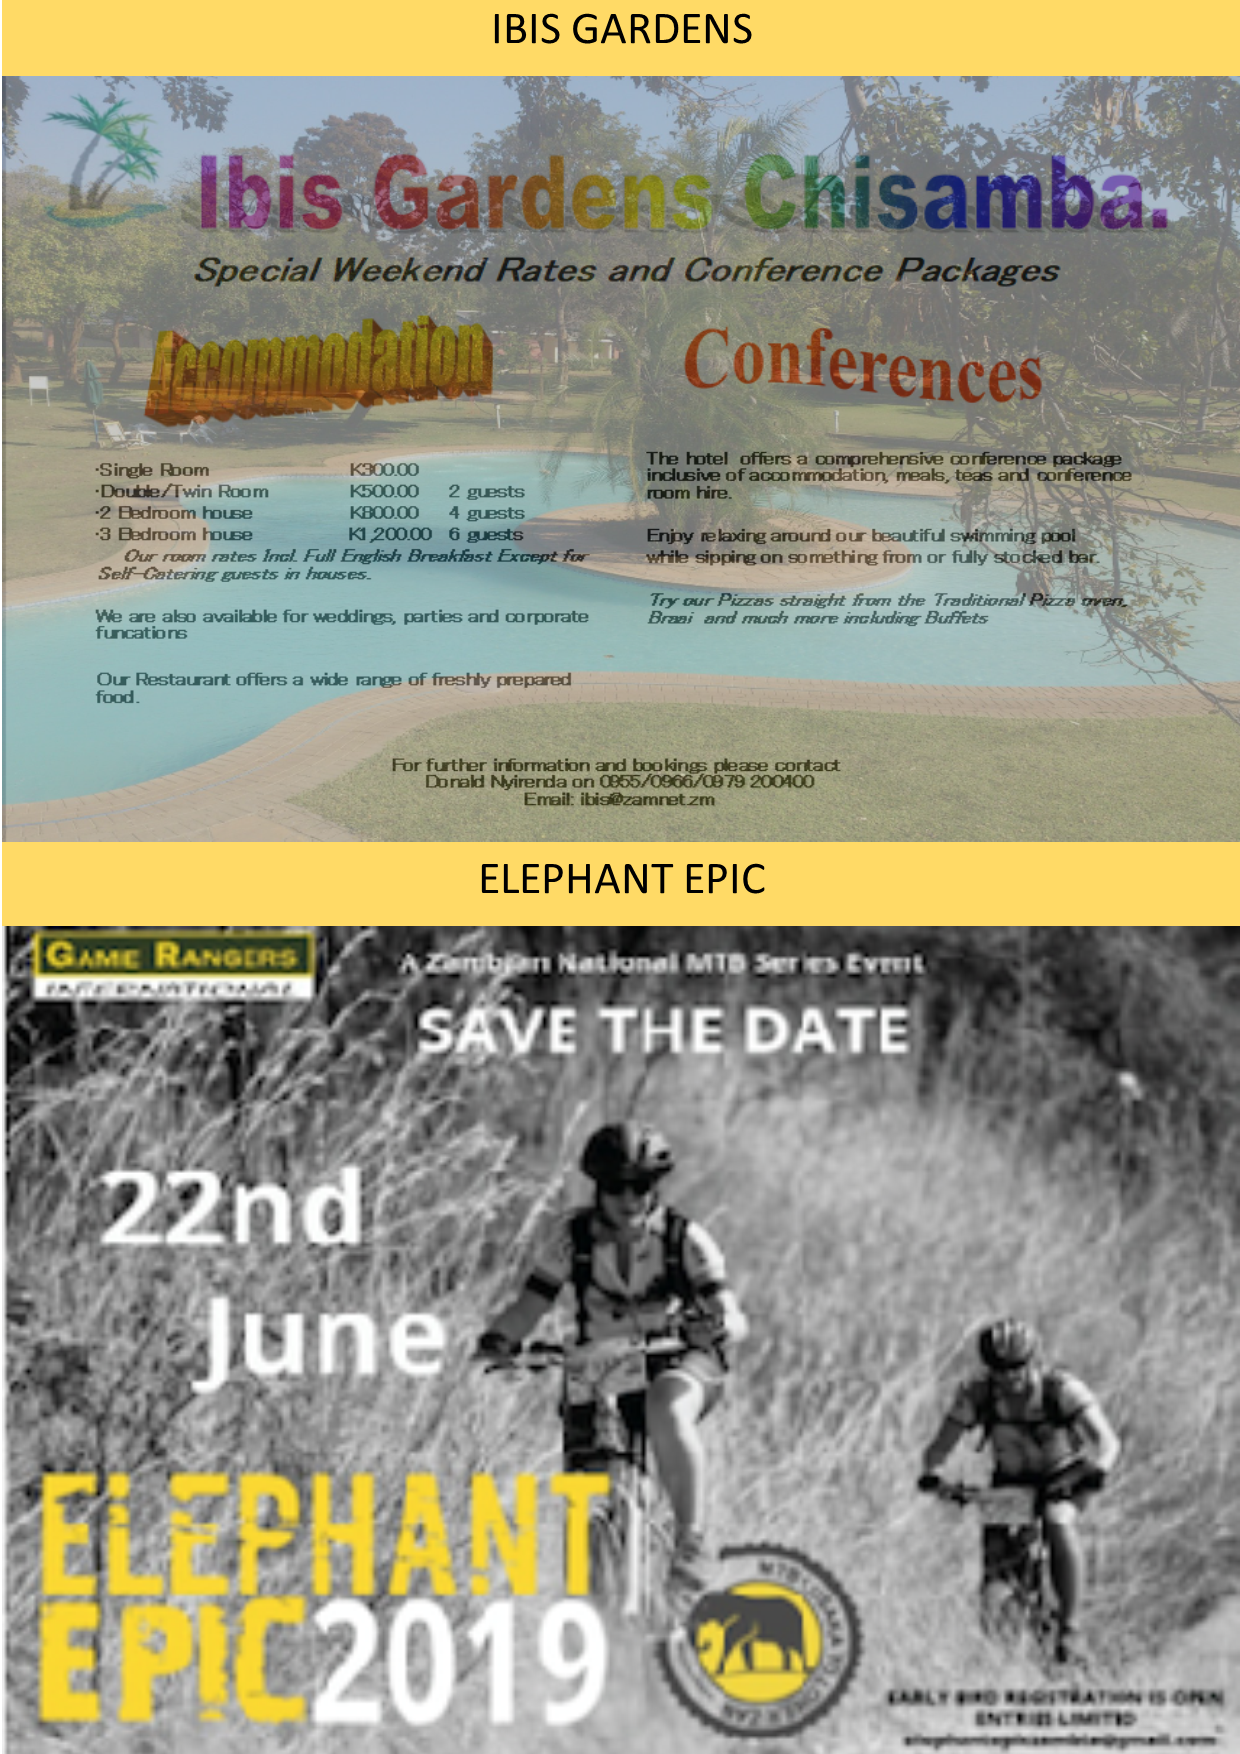 06 05 2019 - IBIS GARDEN'S CHISAMBA / ELEPHANT EPIC » Ad-dicts Ads